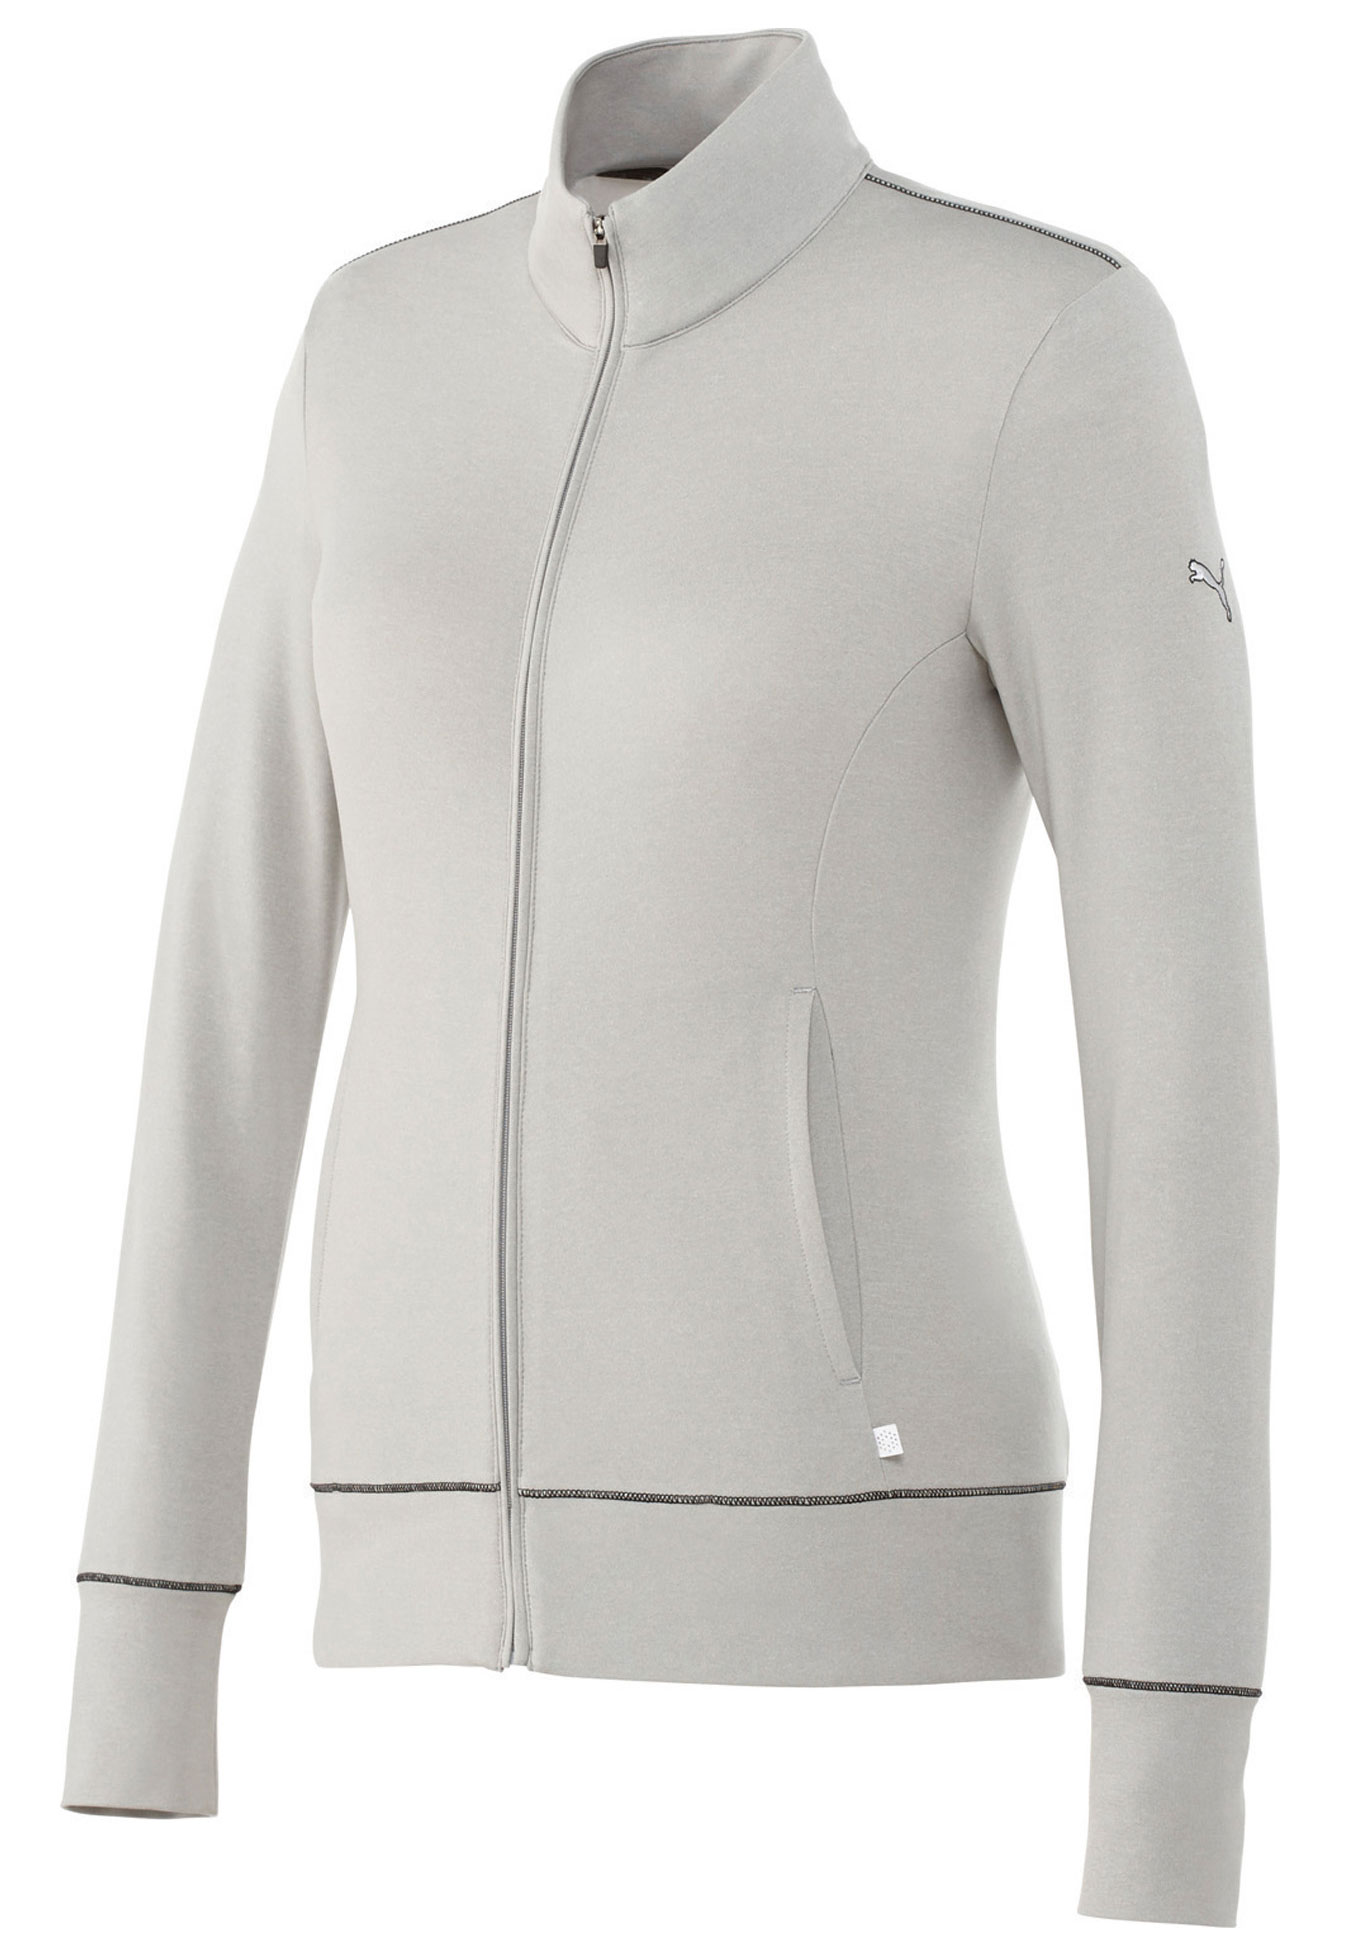 Womens Puma Golf Track Jacket